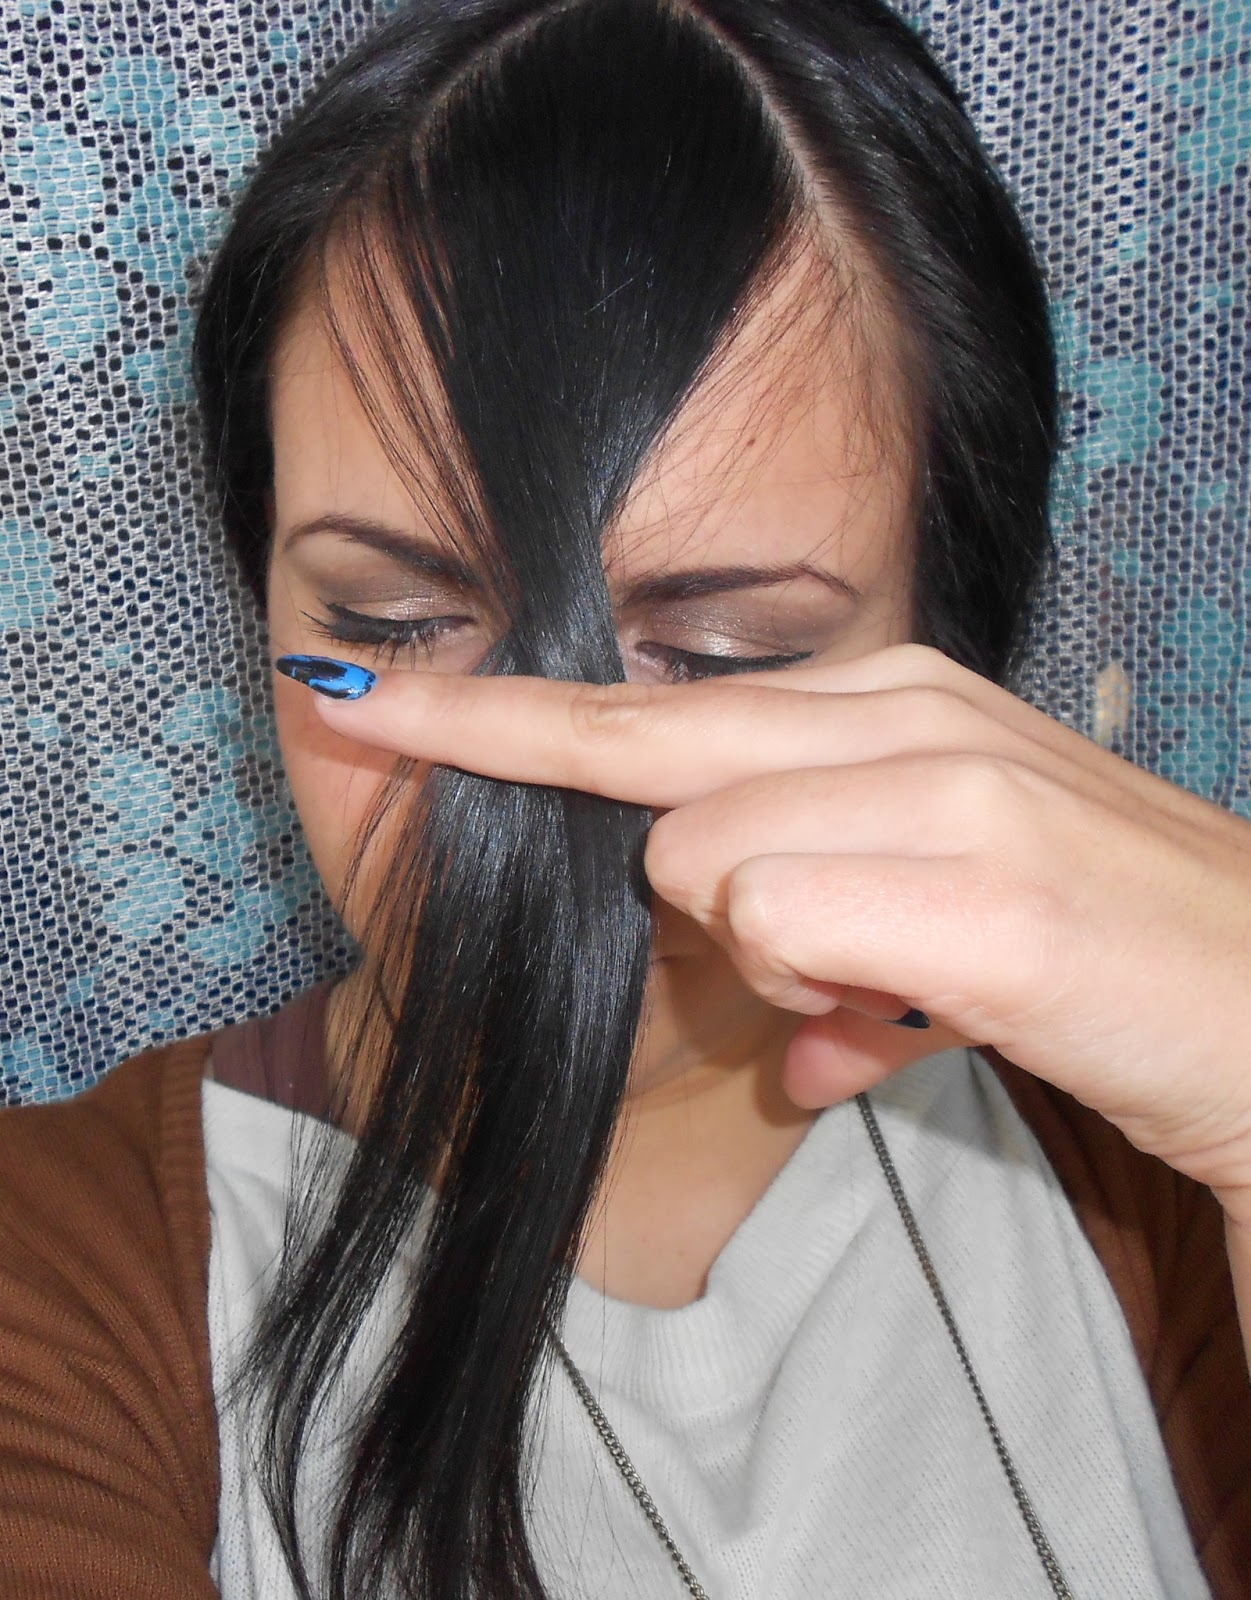 Lola Loves Sparkles How To Cut Your Fringe Bangs At Home Step By Step